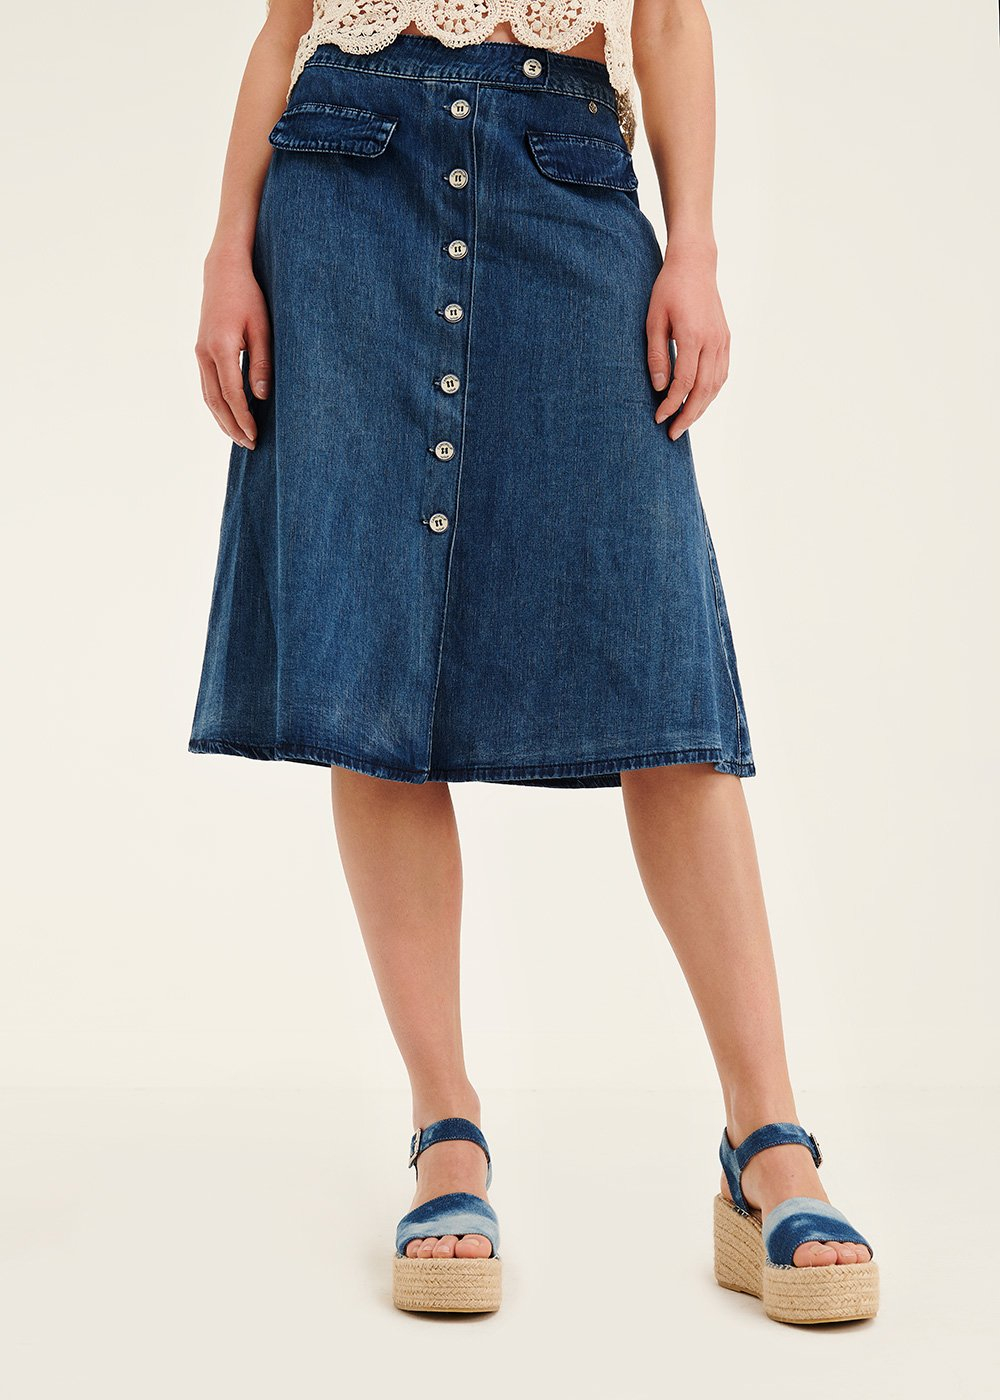 Giuly denim skirt with front buttons - Light Blue - Woman